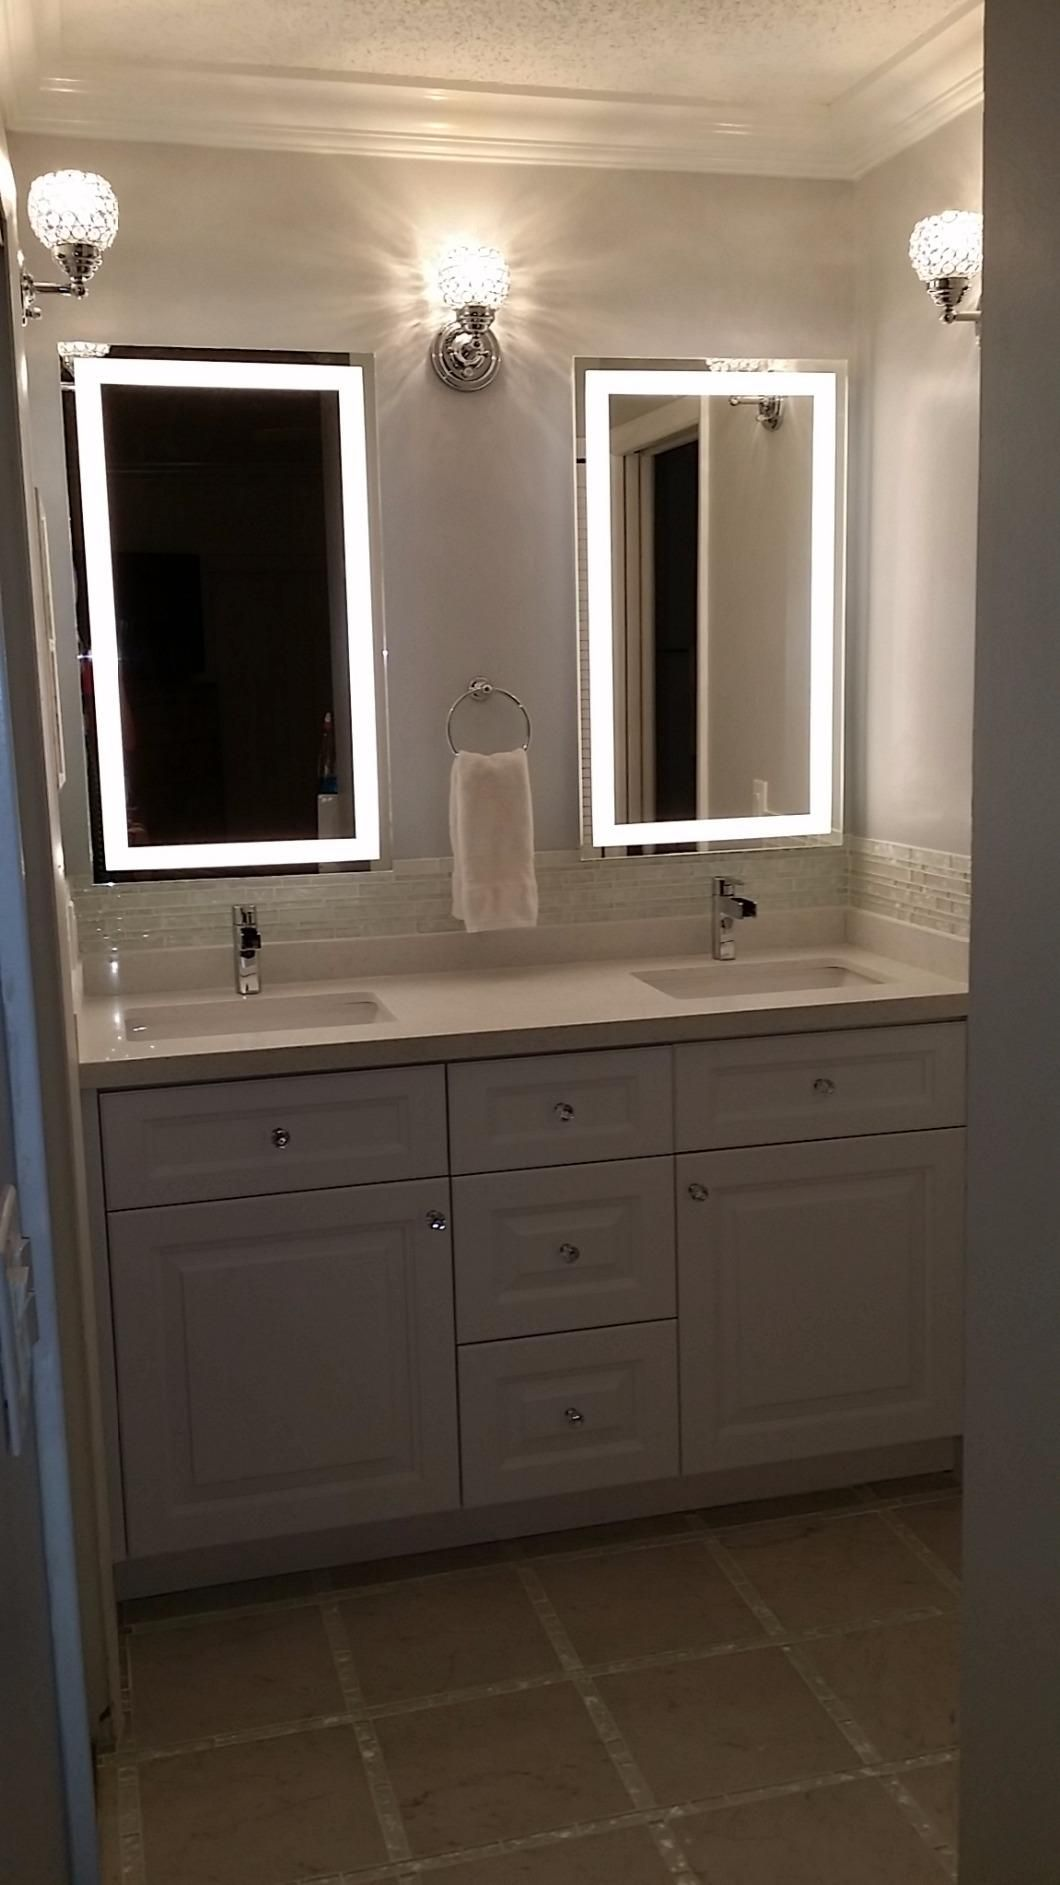 Bathroom Vanity .Co.Za 8 reasons why you should have a backlit mirror in your bathroom